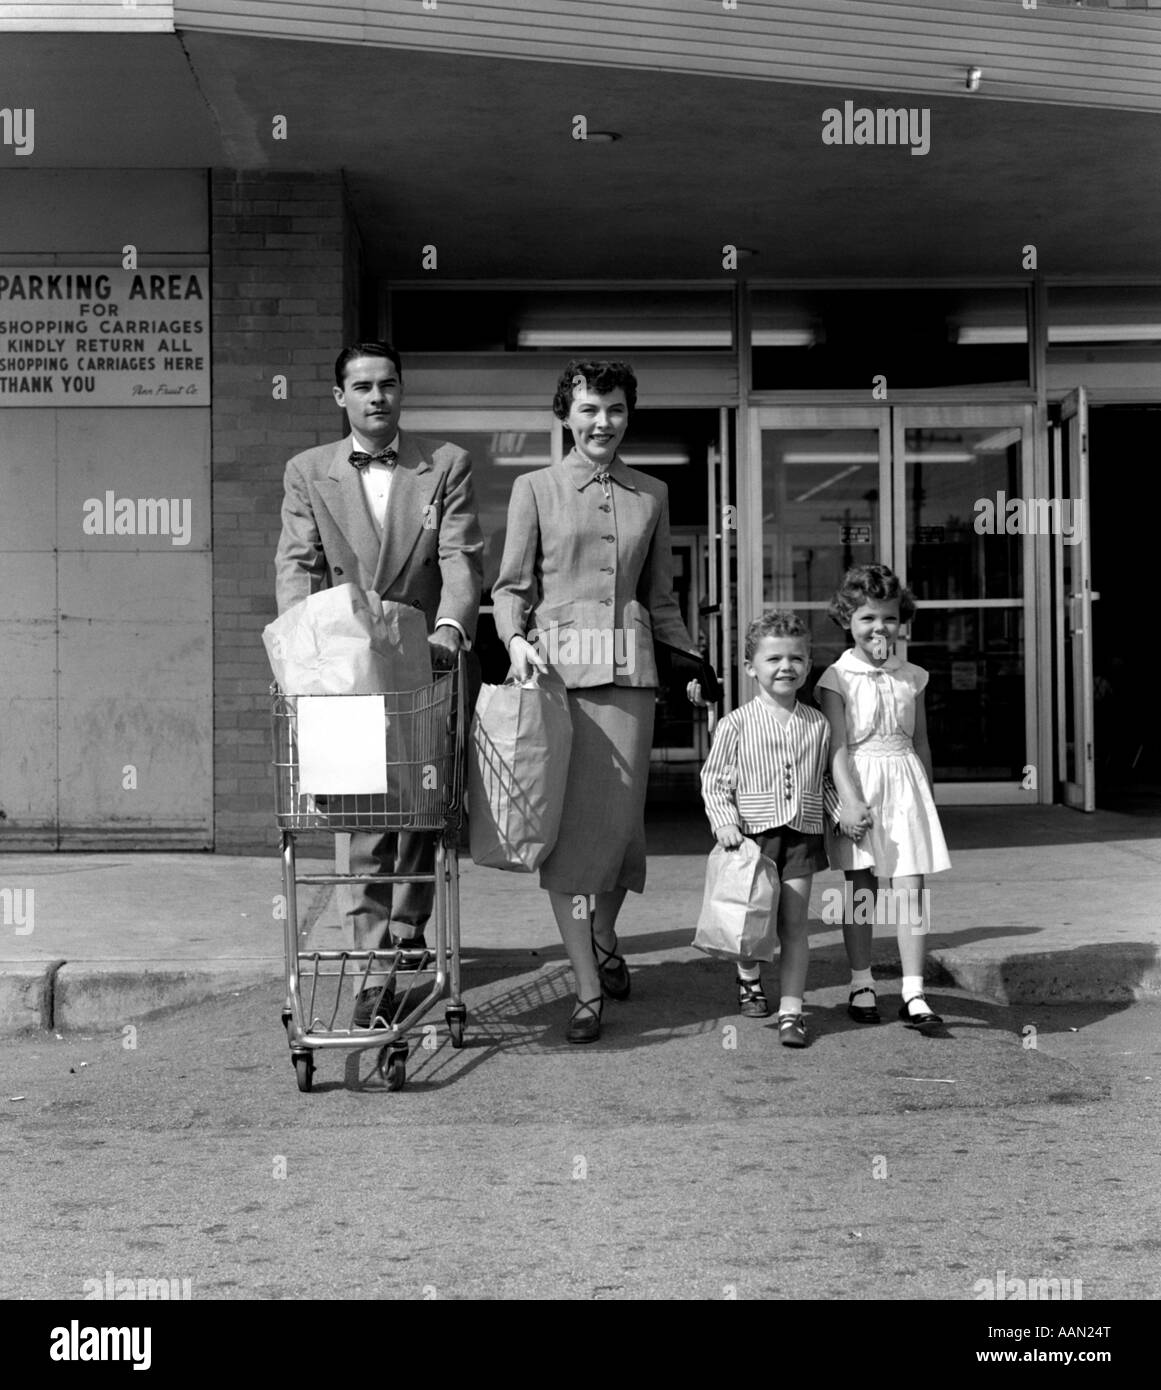 1950s FAMILY MAN WOMAN GIRL BOY WALKING OUT OF SUPERMARKET STORE MOTHER AND SON CARRYING BAGS FATHER PUSHING GROCERY - Stock Image